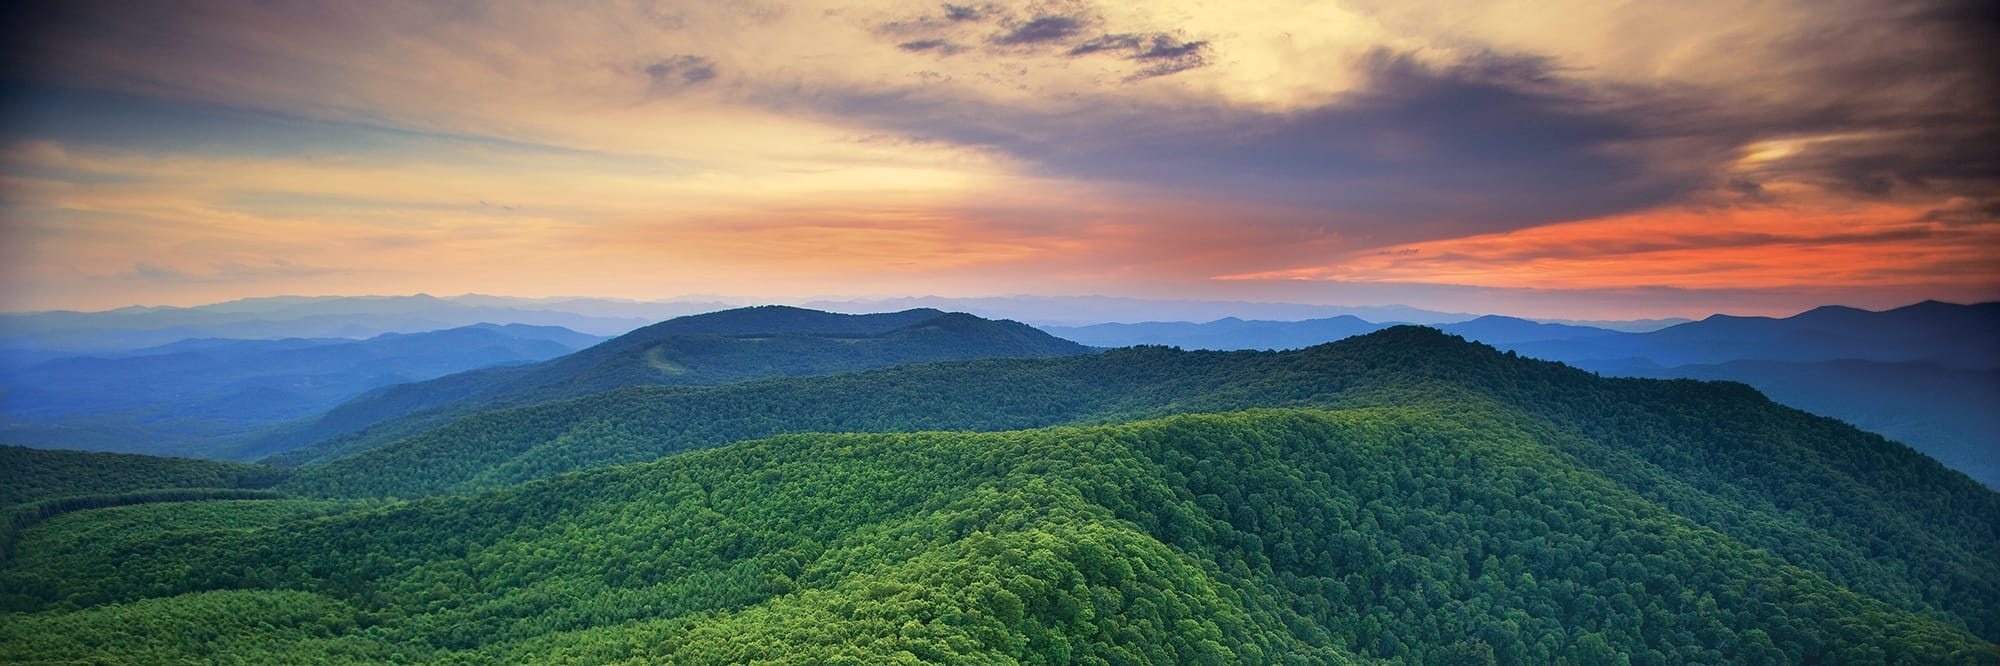 Sunset on The Blue Ridge Mountains